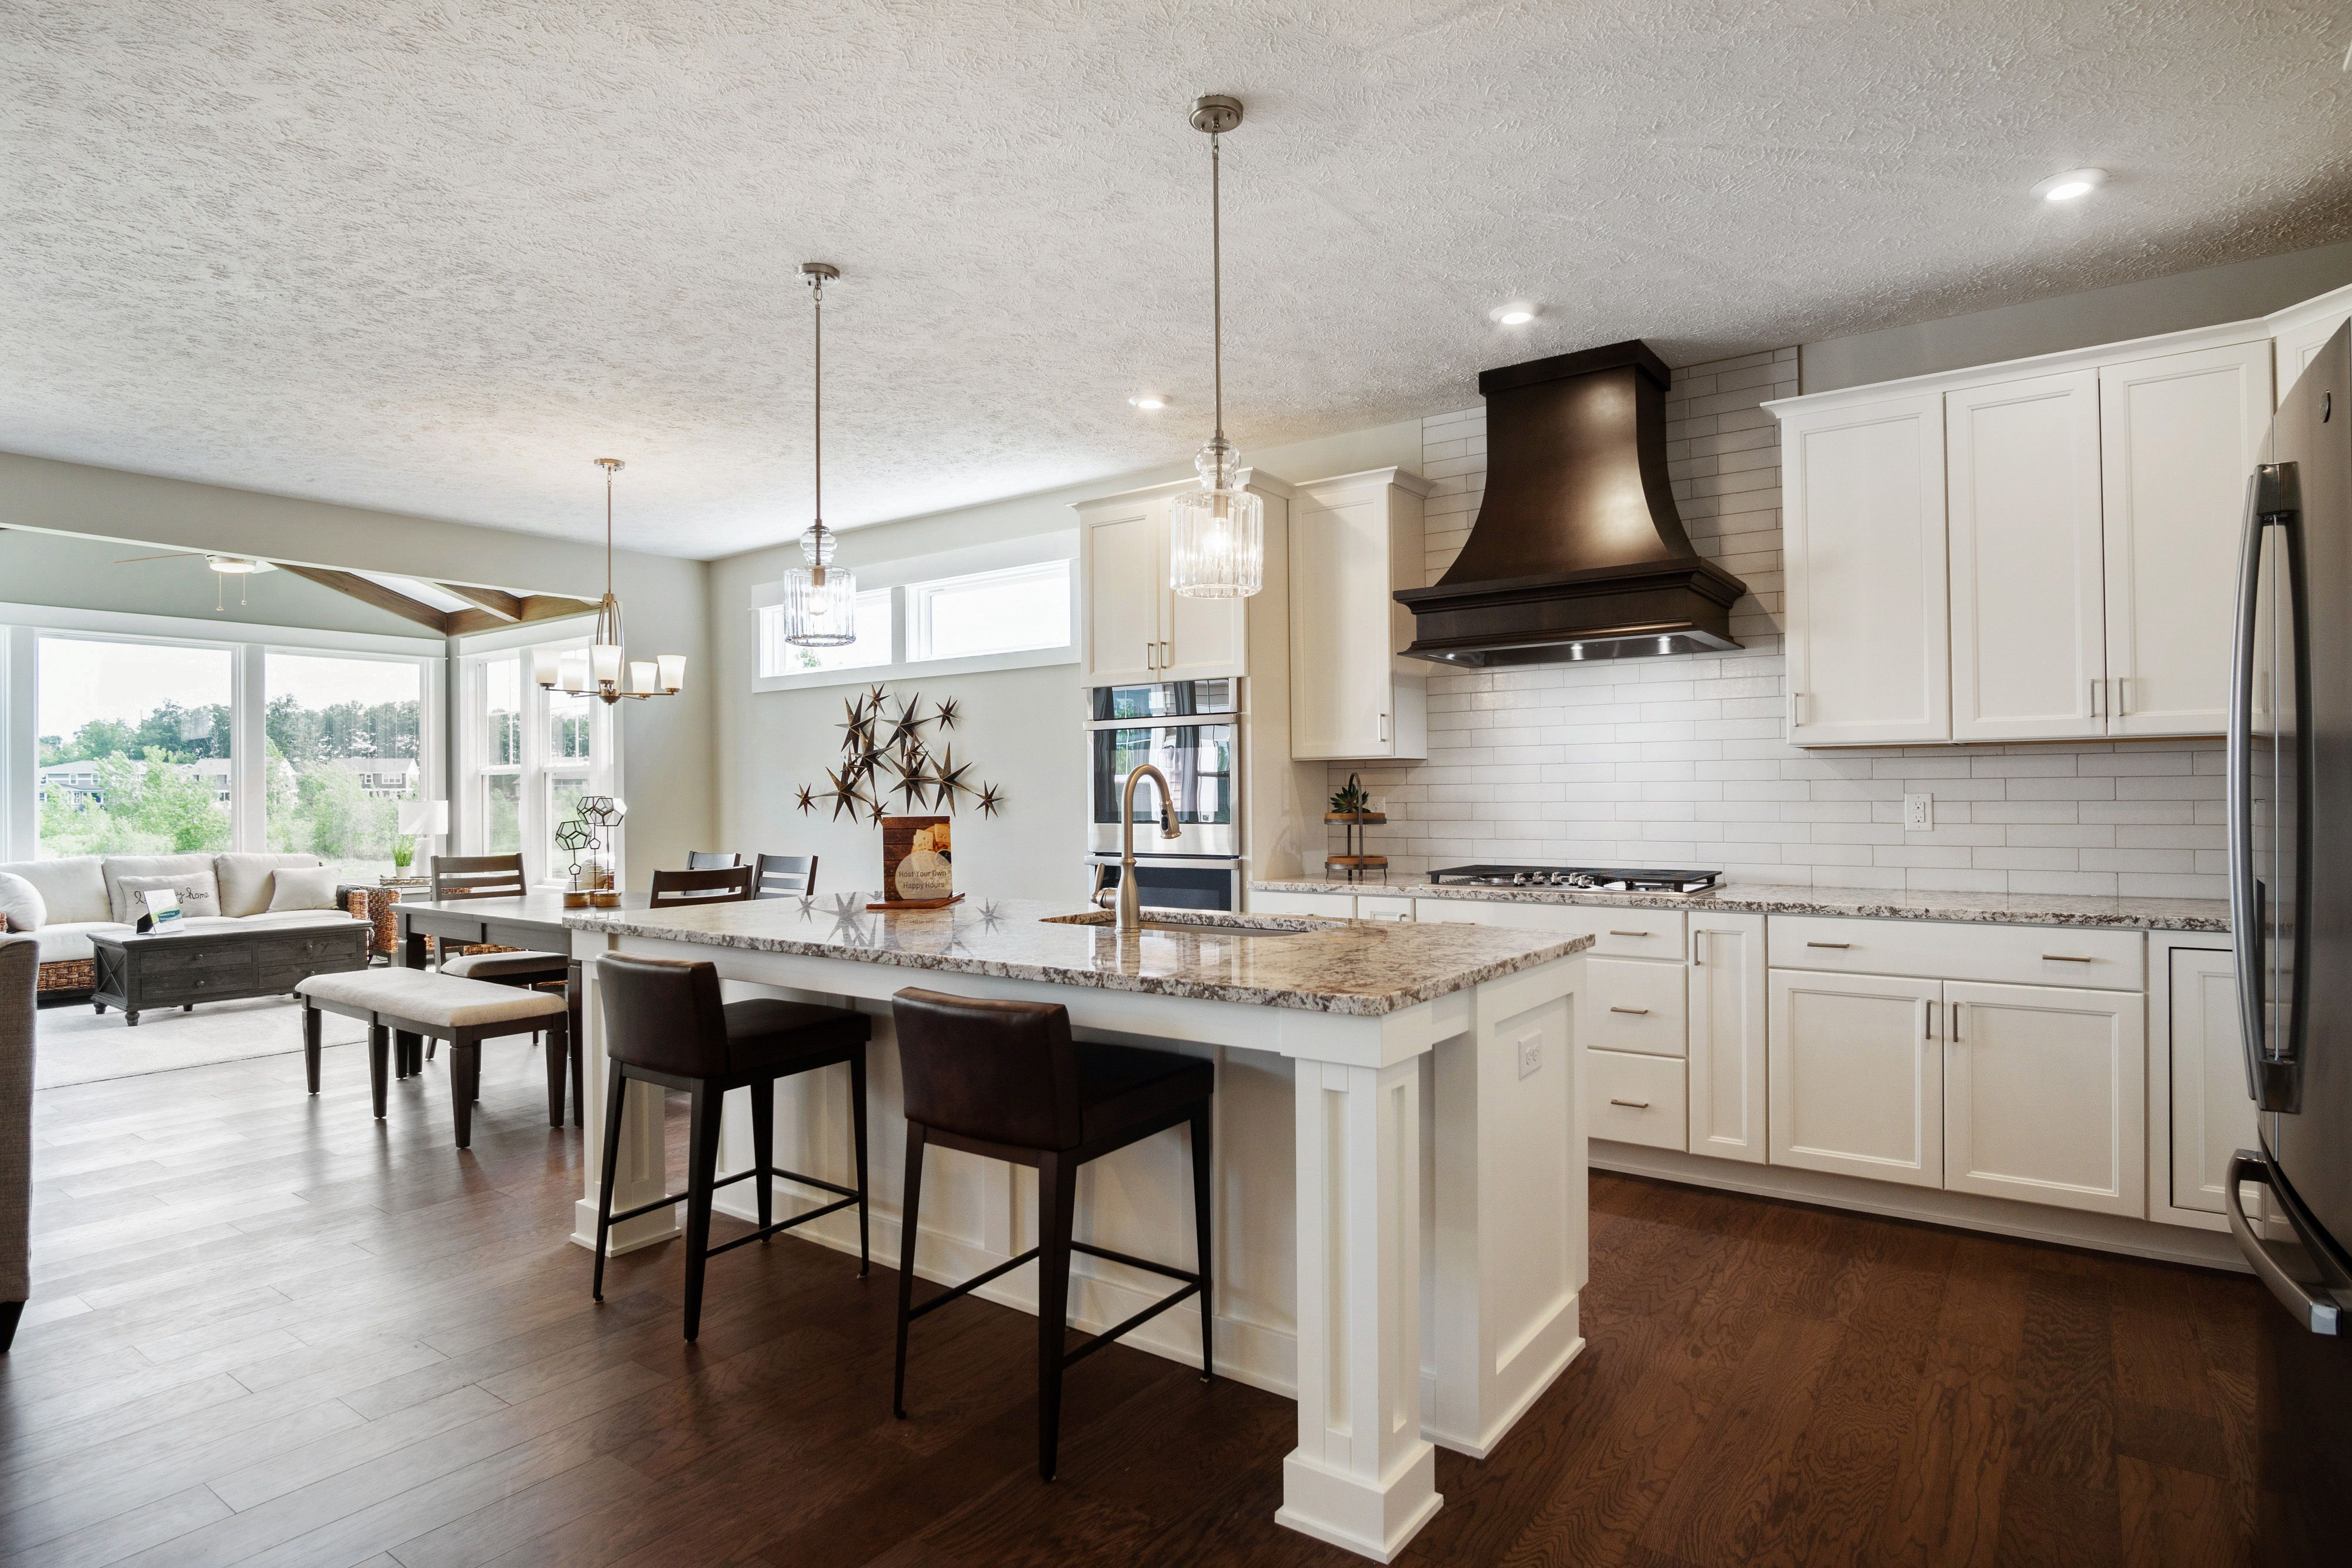 Kitchen featured in The Willow ll By Eastbrook Homes Inc. in Lansing, MI